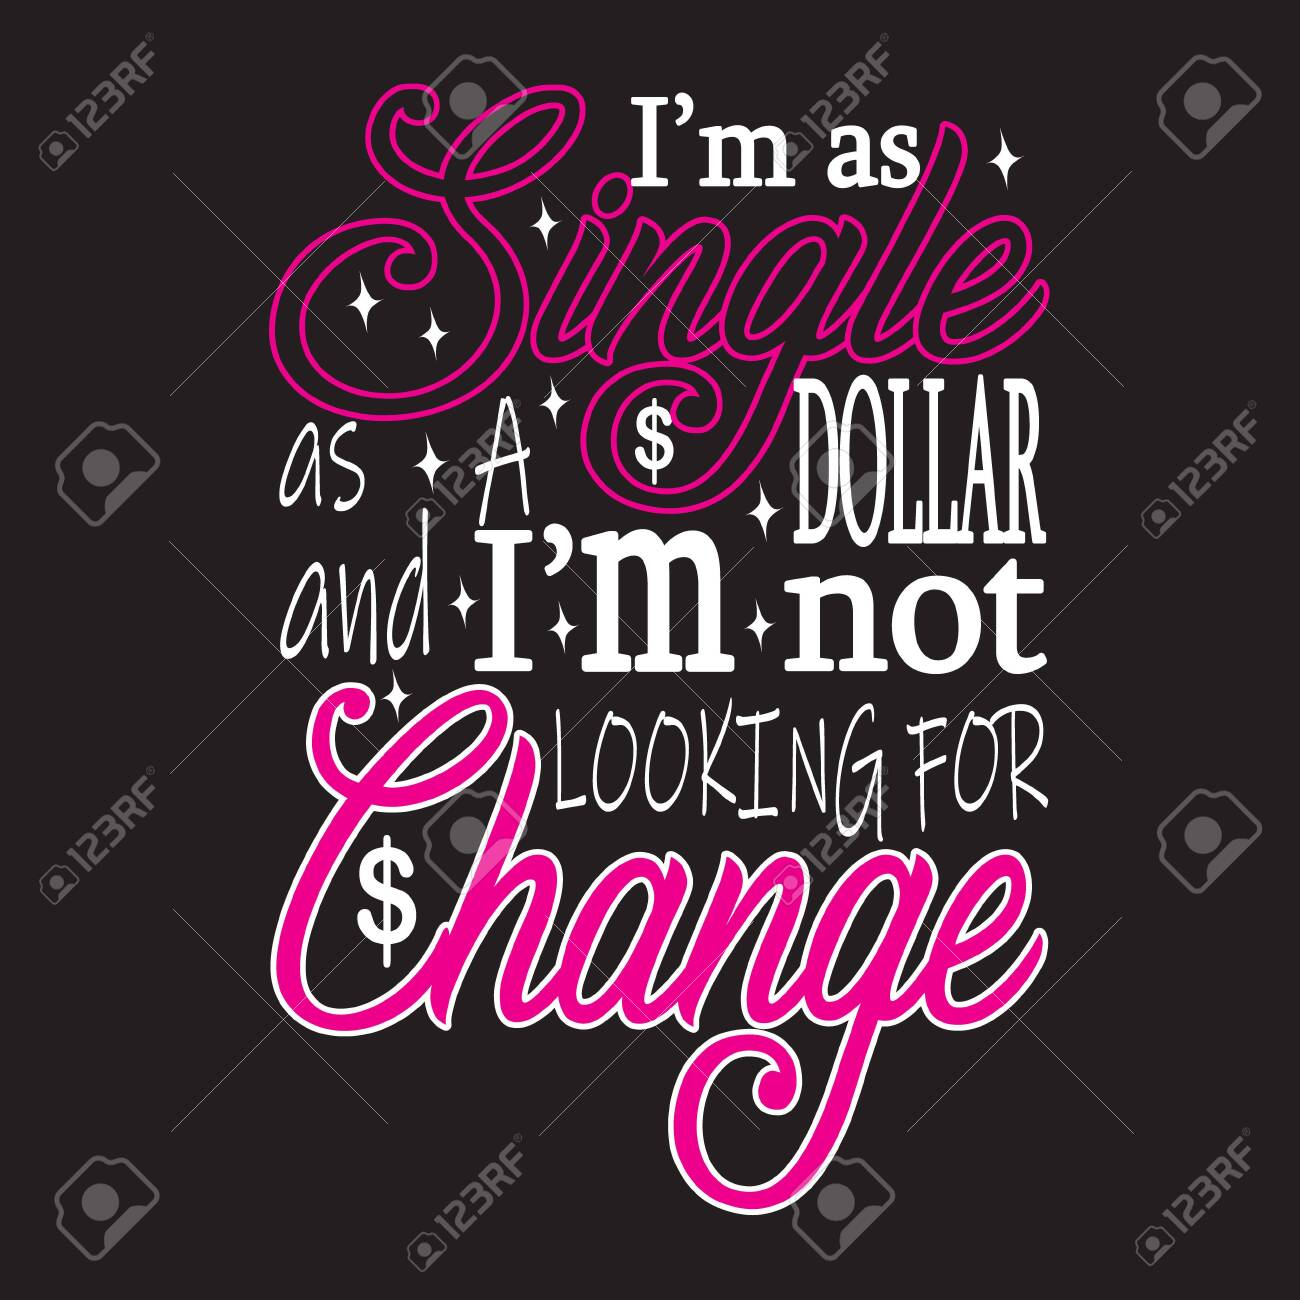 Single Quotes And Slogan Good For T Shirt I M As Single As A Royalty Free Cliparts Vectors And Stock Illustration Image 139362305